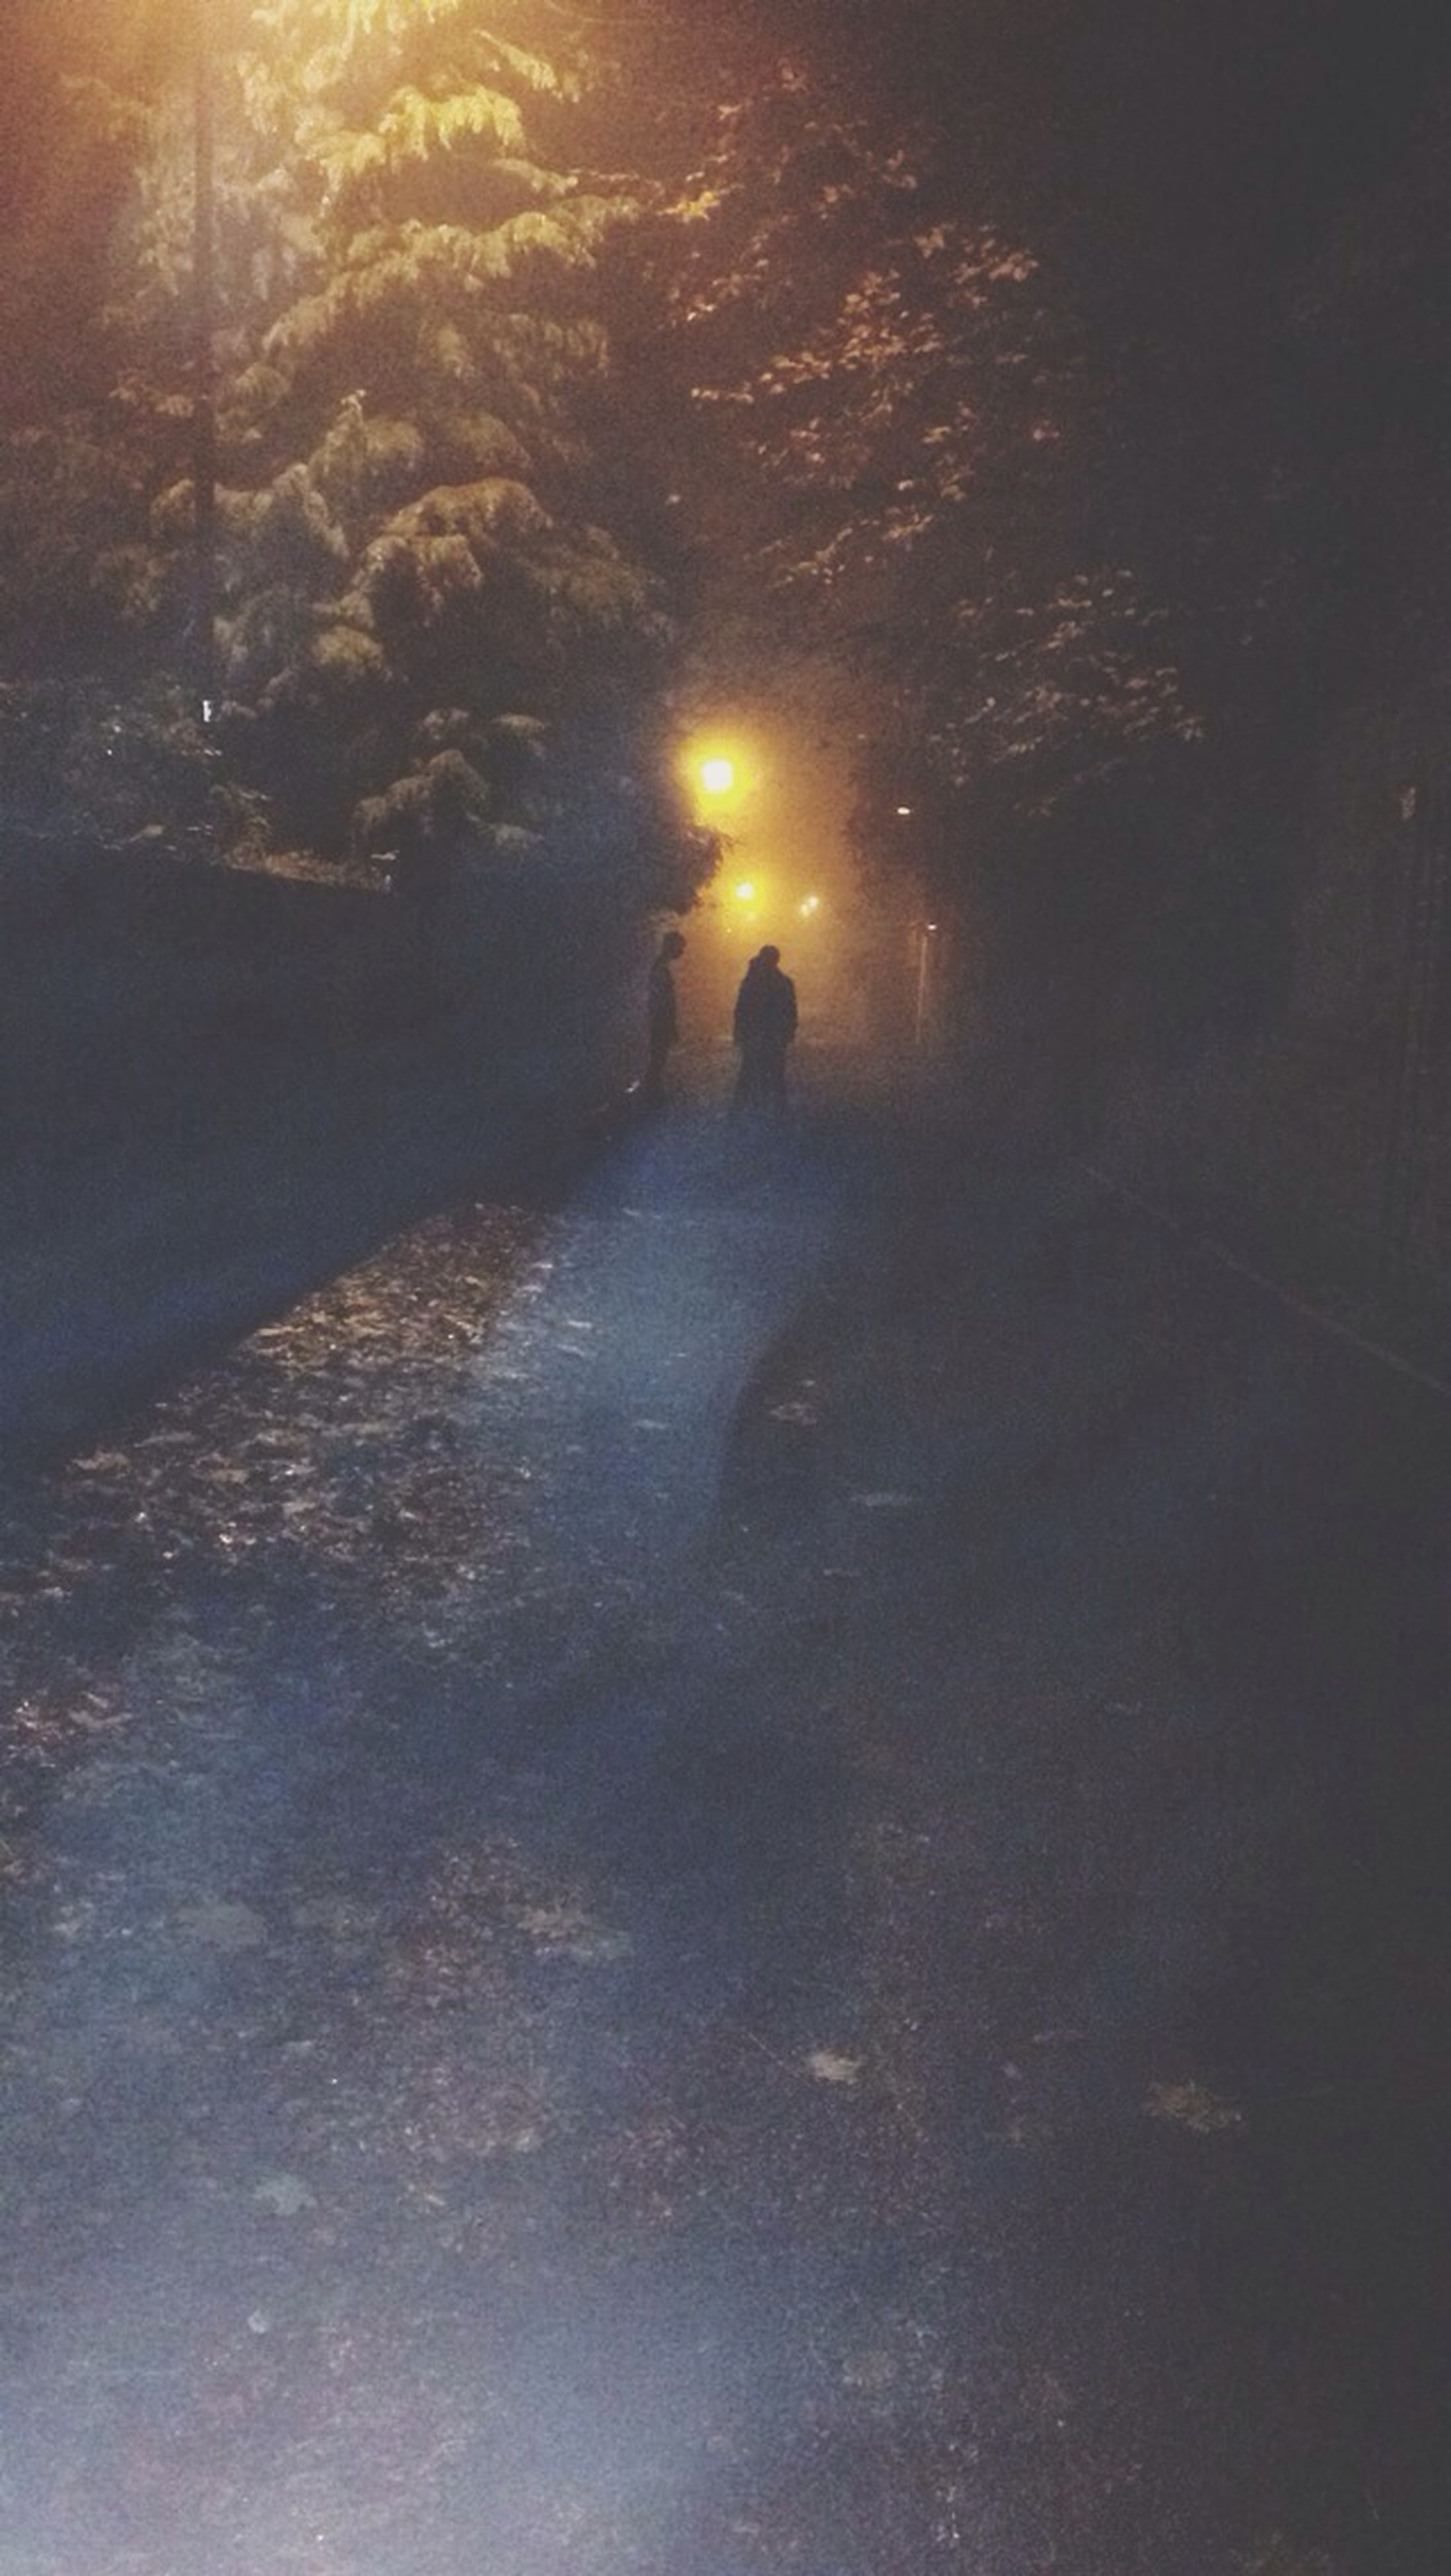 night, the way forward, street, illuminated, road, transportation, men, unrecognizable person, walking, puddle, lifestyles, silhouette, weather, season, water, leisure activity, outdoors, street light